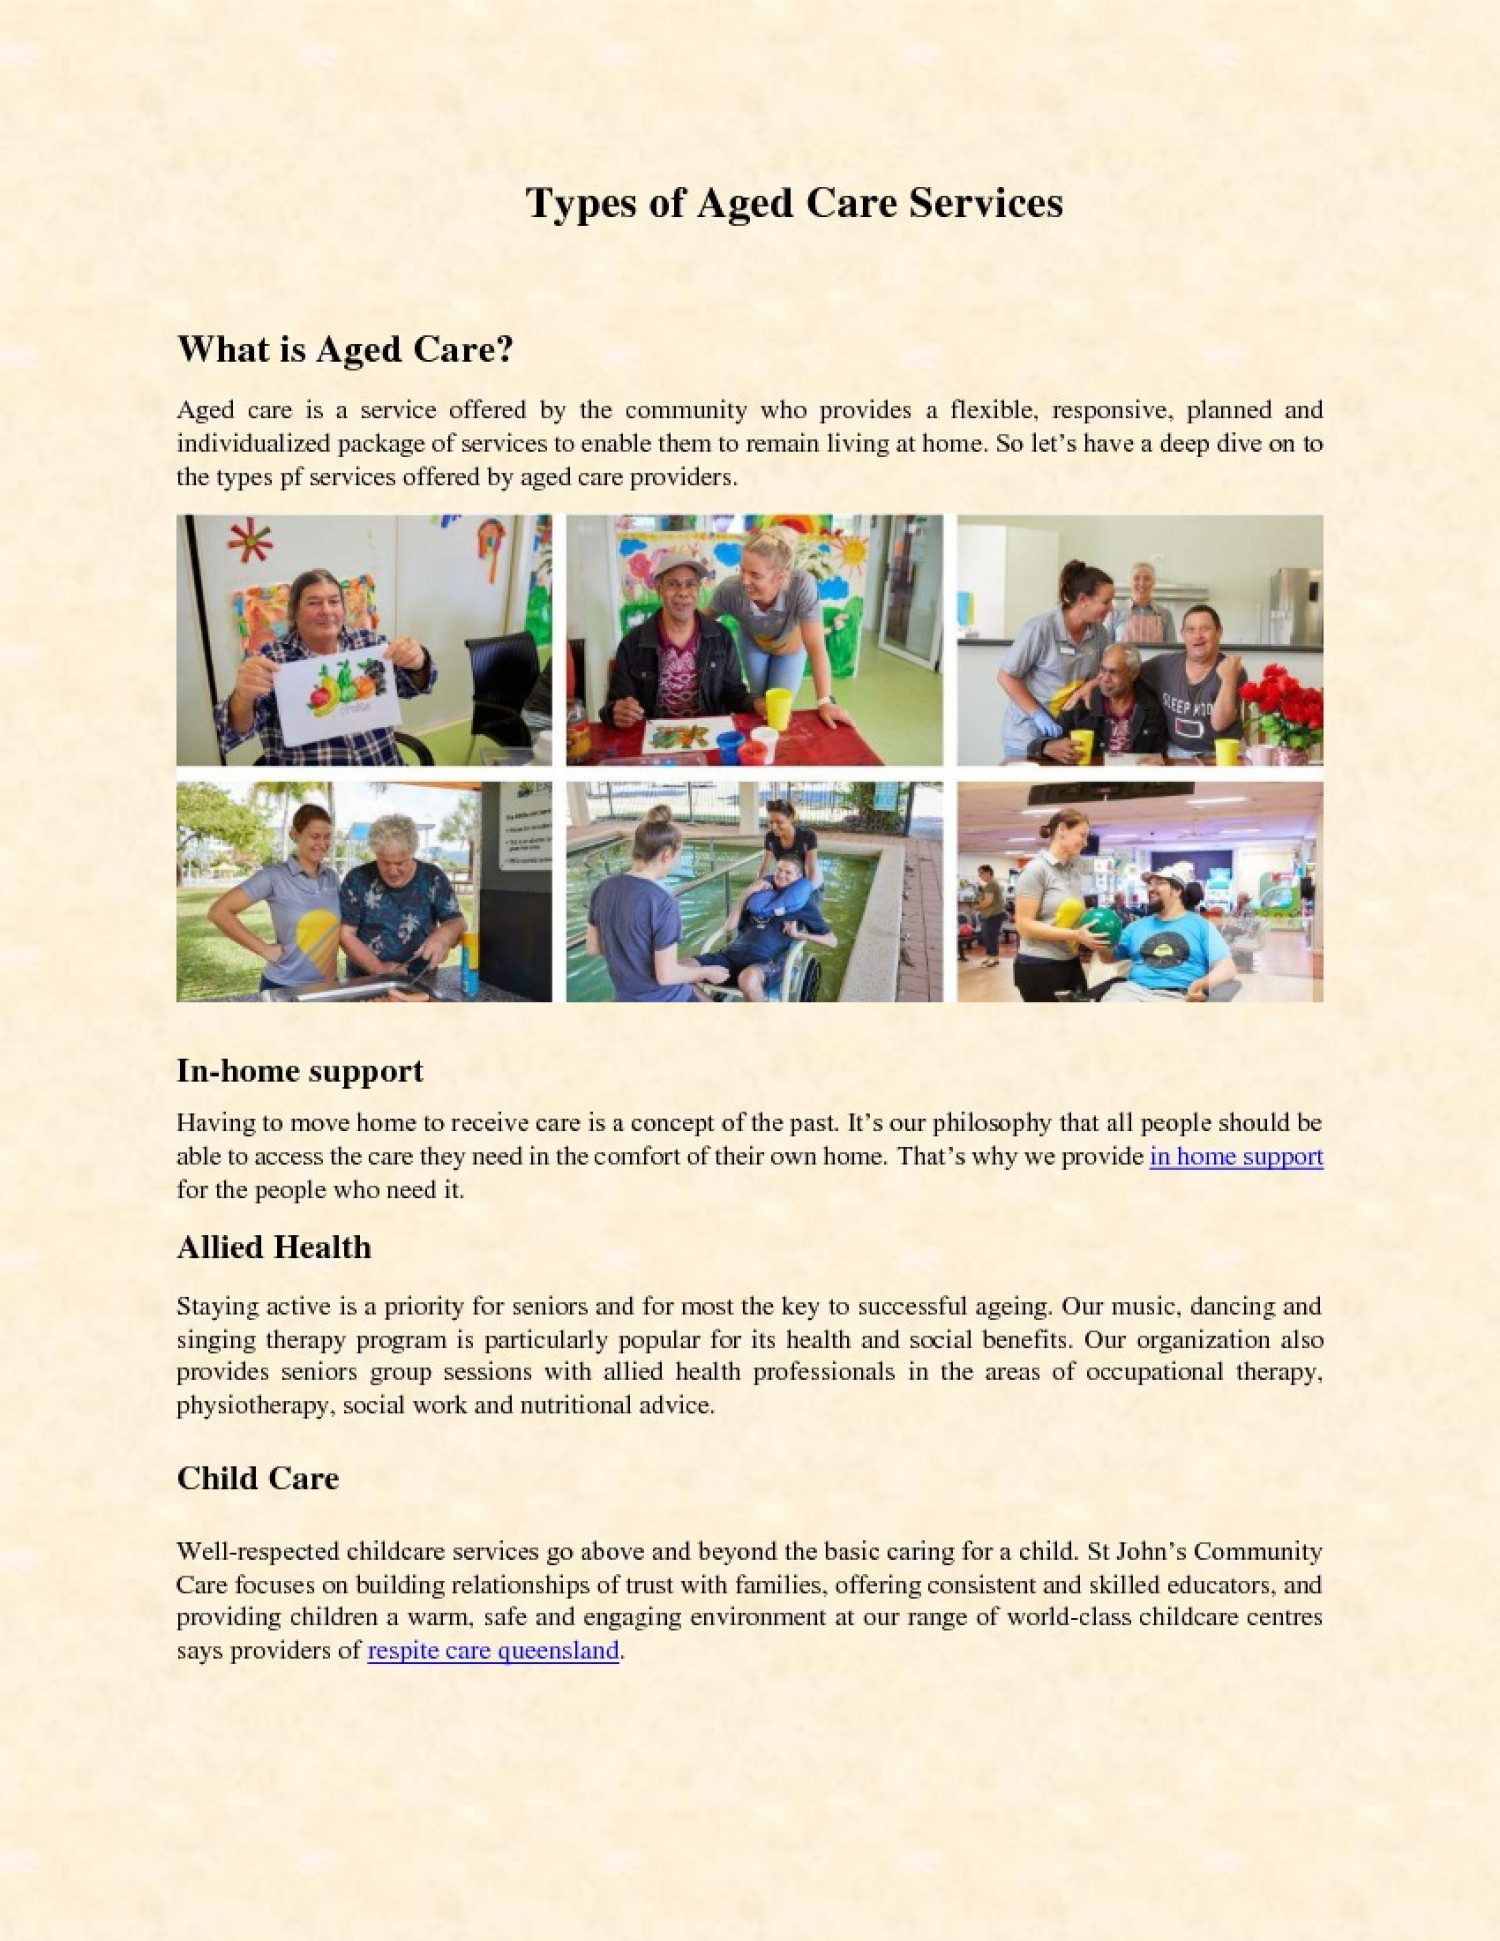 Types of Aged Care Services Infographic